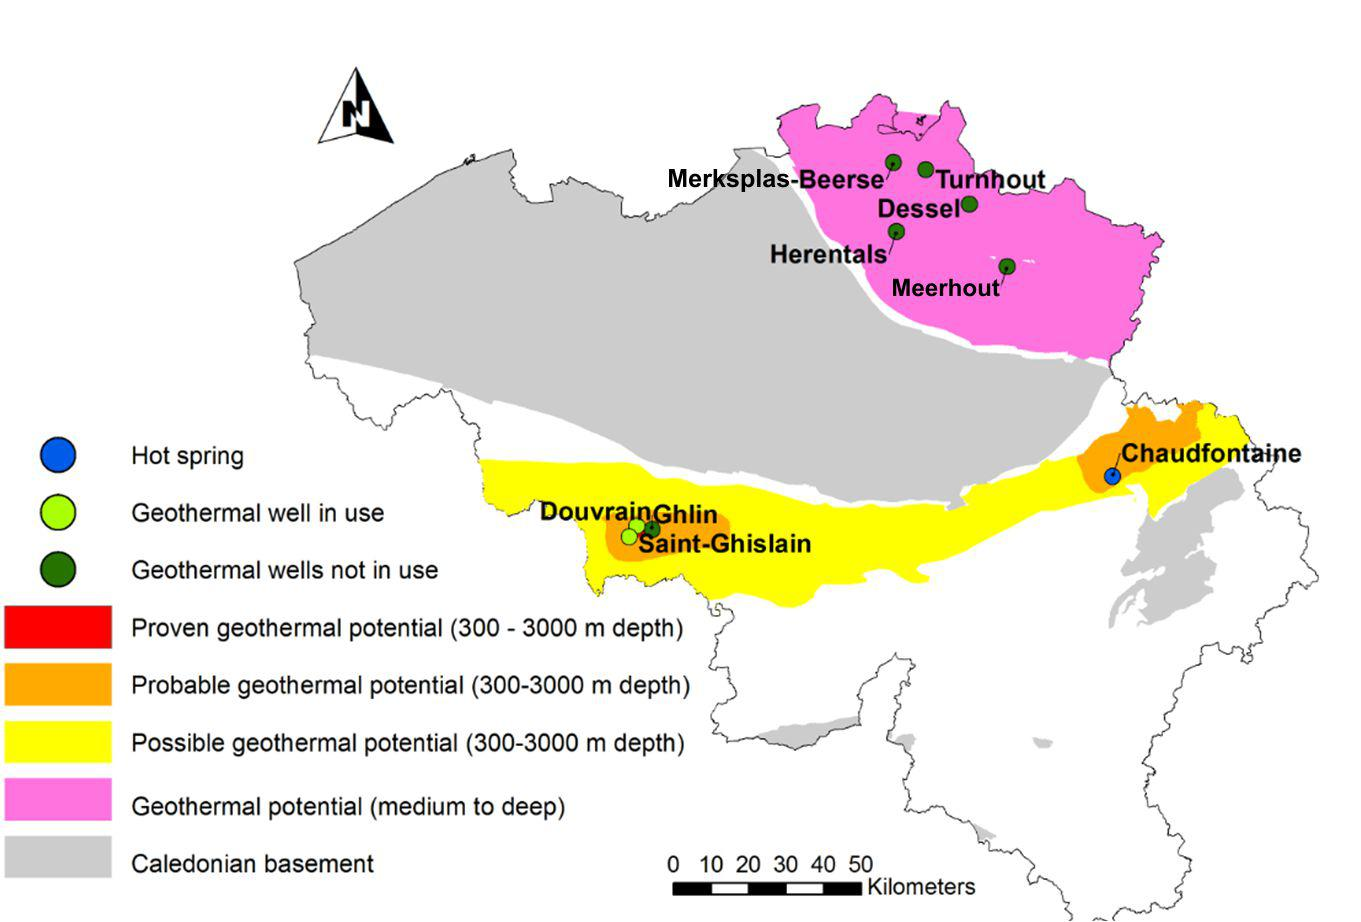 Our geologists map geothermal resources royal belgian institute of map of belgium with geothermal potential medium to very deep and the natural gumiabroncs Choice Image